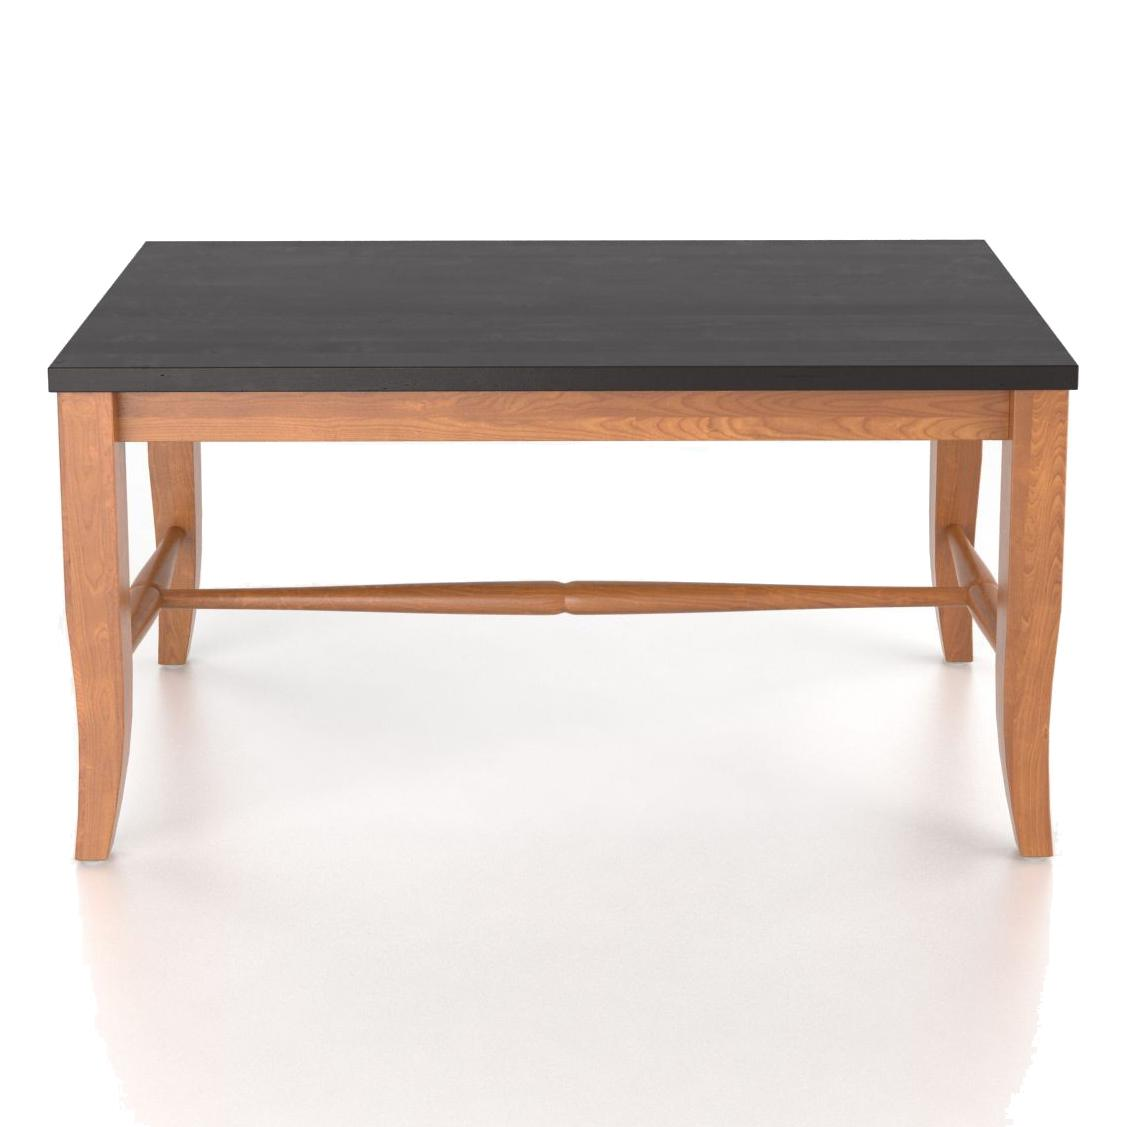 "Custom Dining <b>Customizable</b> Wooden Seat Bench, 18"" by Canadel at Saugerties Furniture Mart"